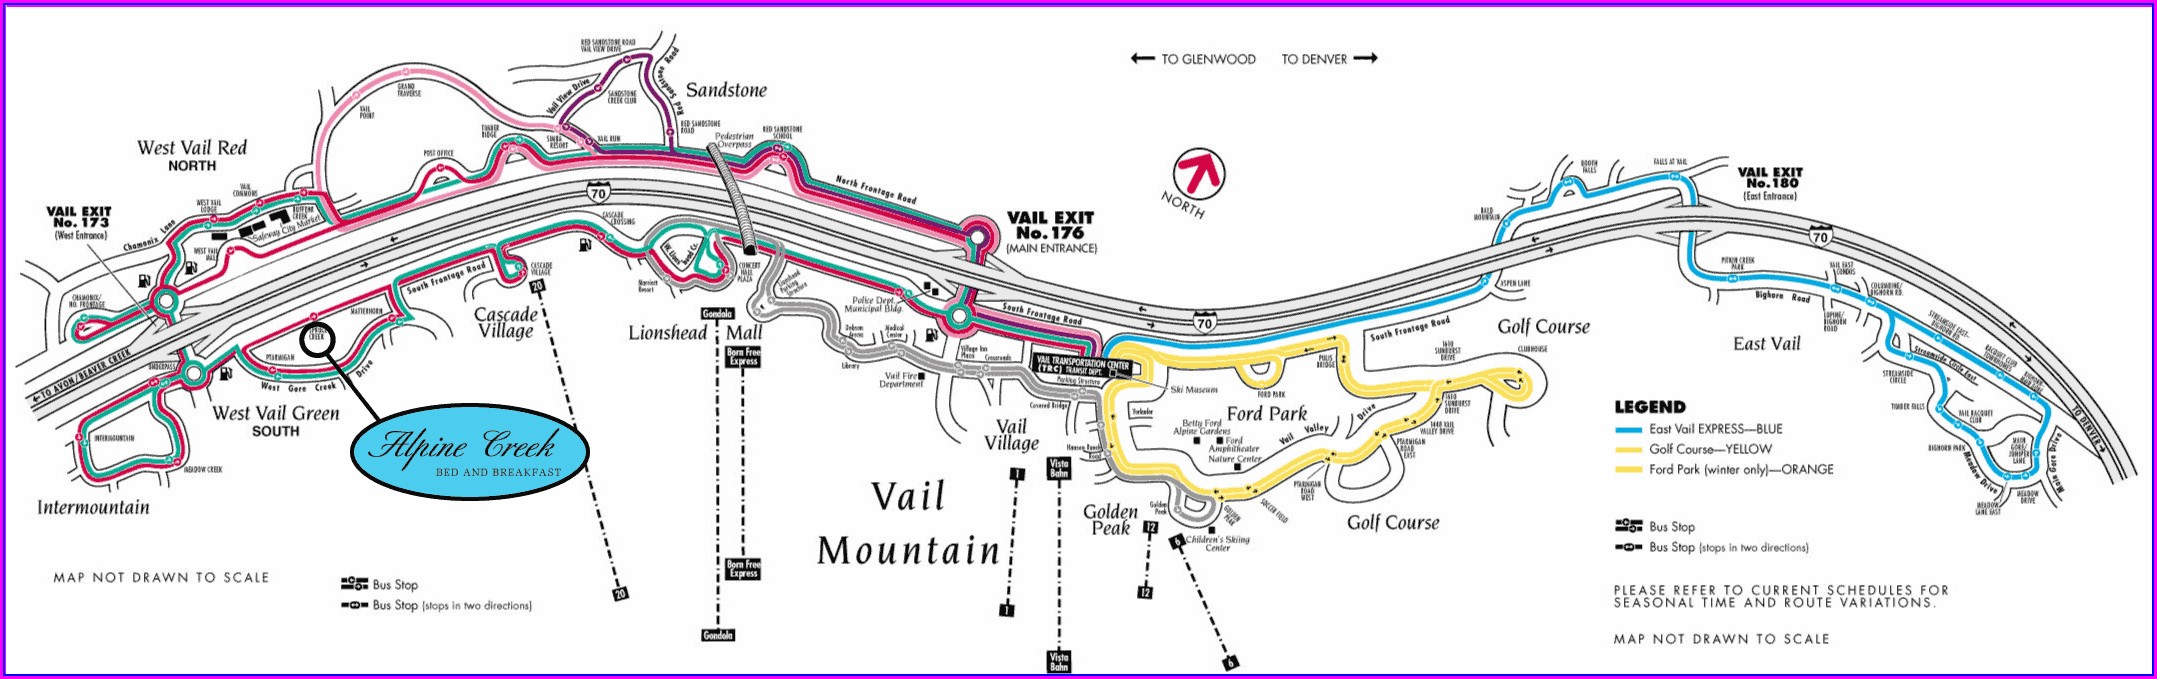 Vail Bus Route Map